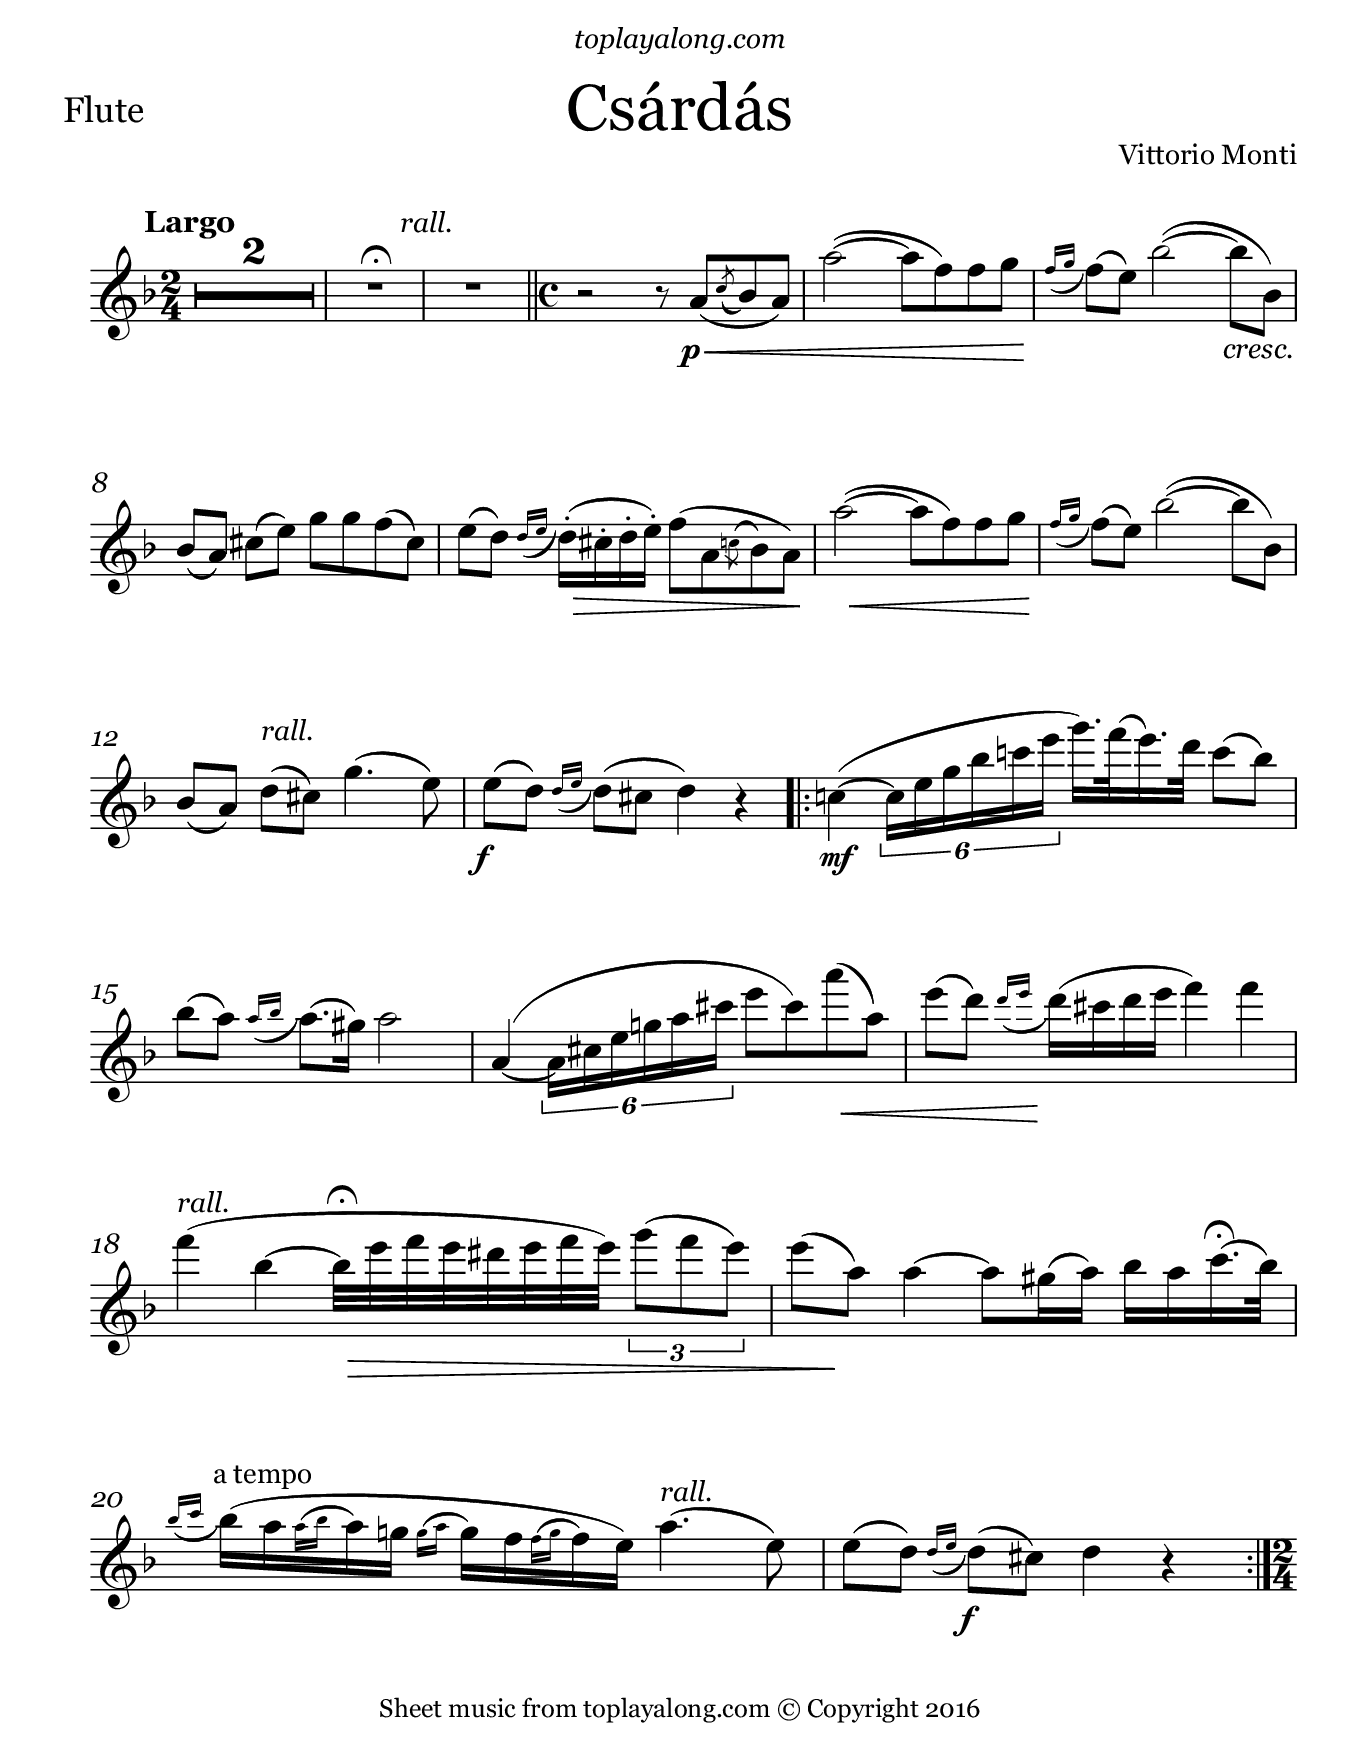 Csárdás by Monti. Sheet music for Flute, page 1.